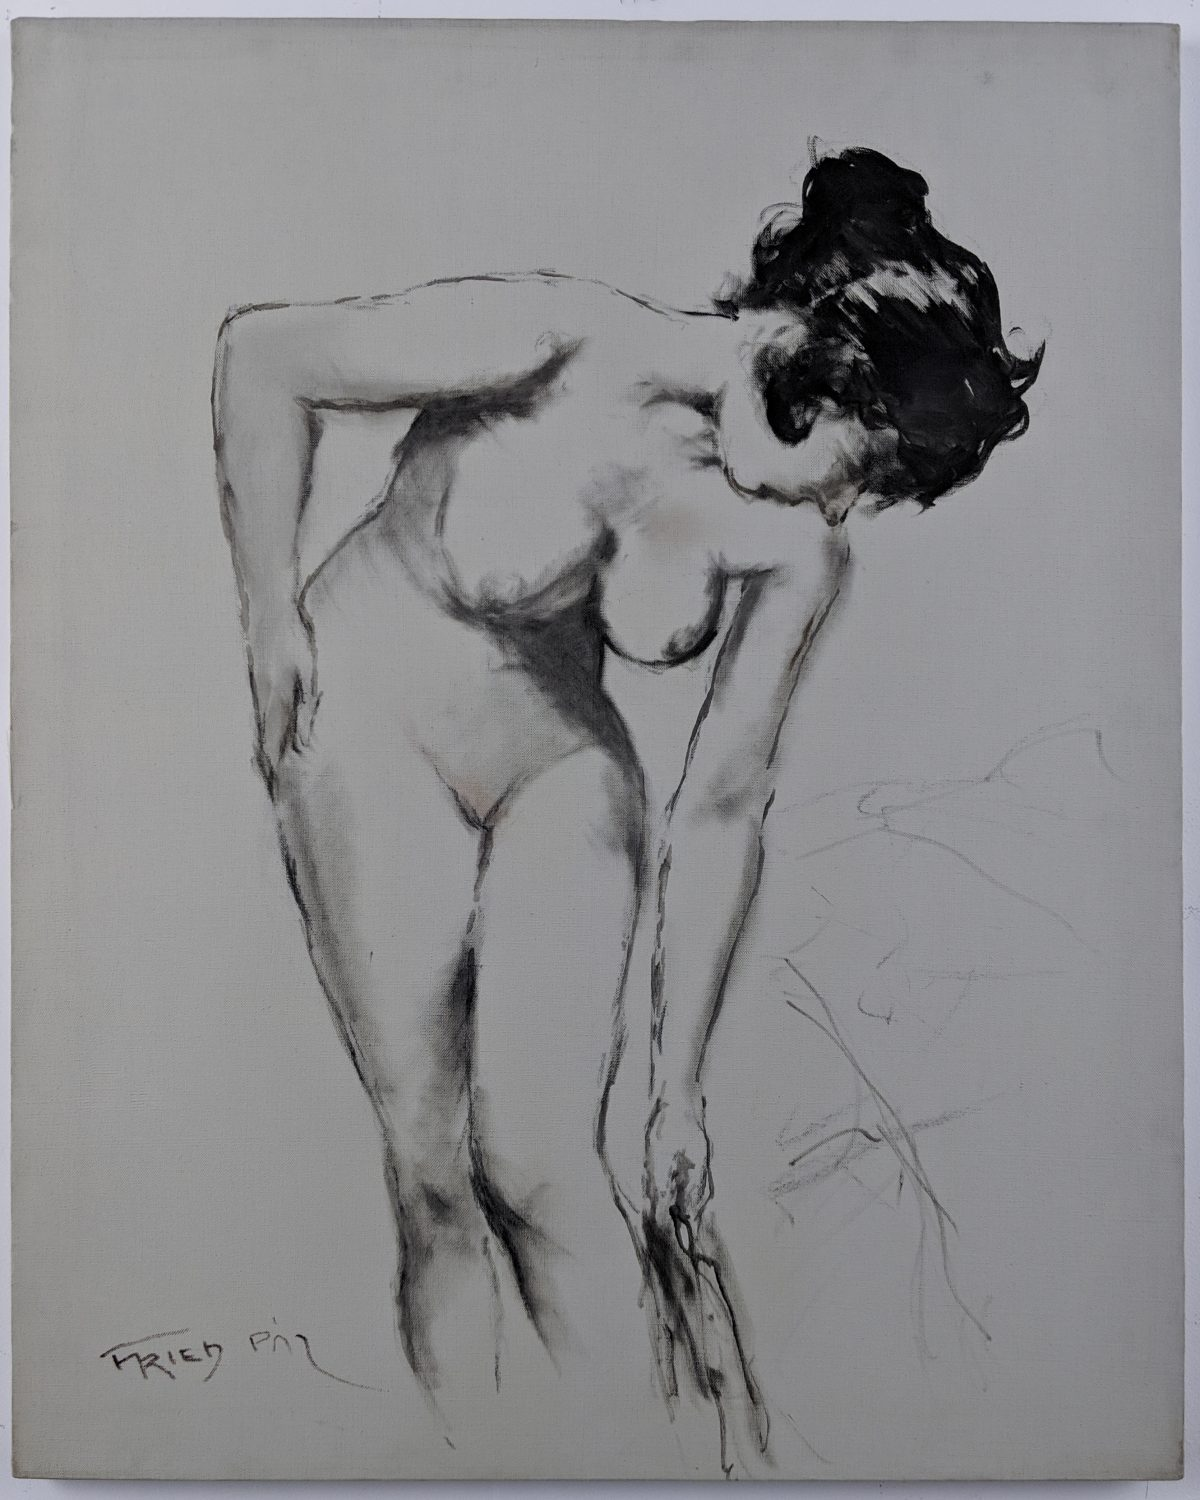 Pál Fried - Untitled (Nude, Black and White I)